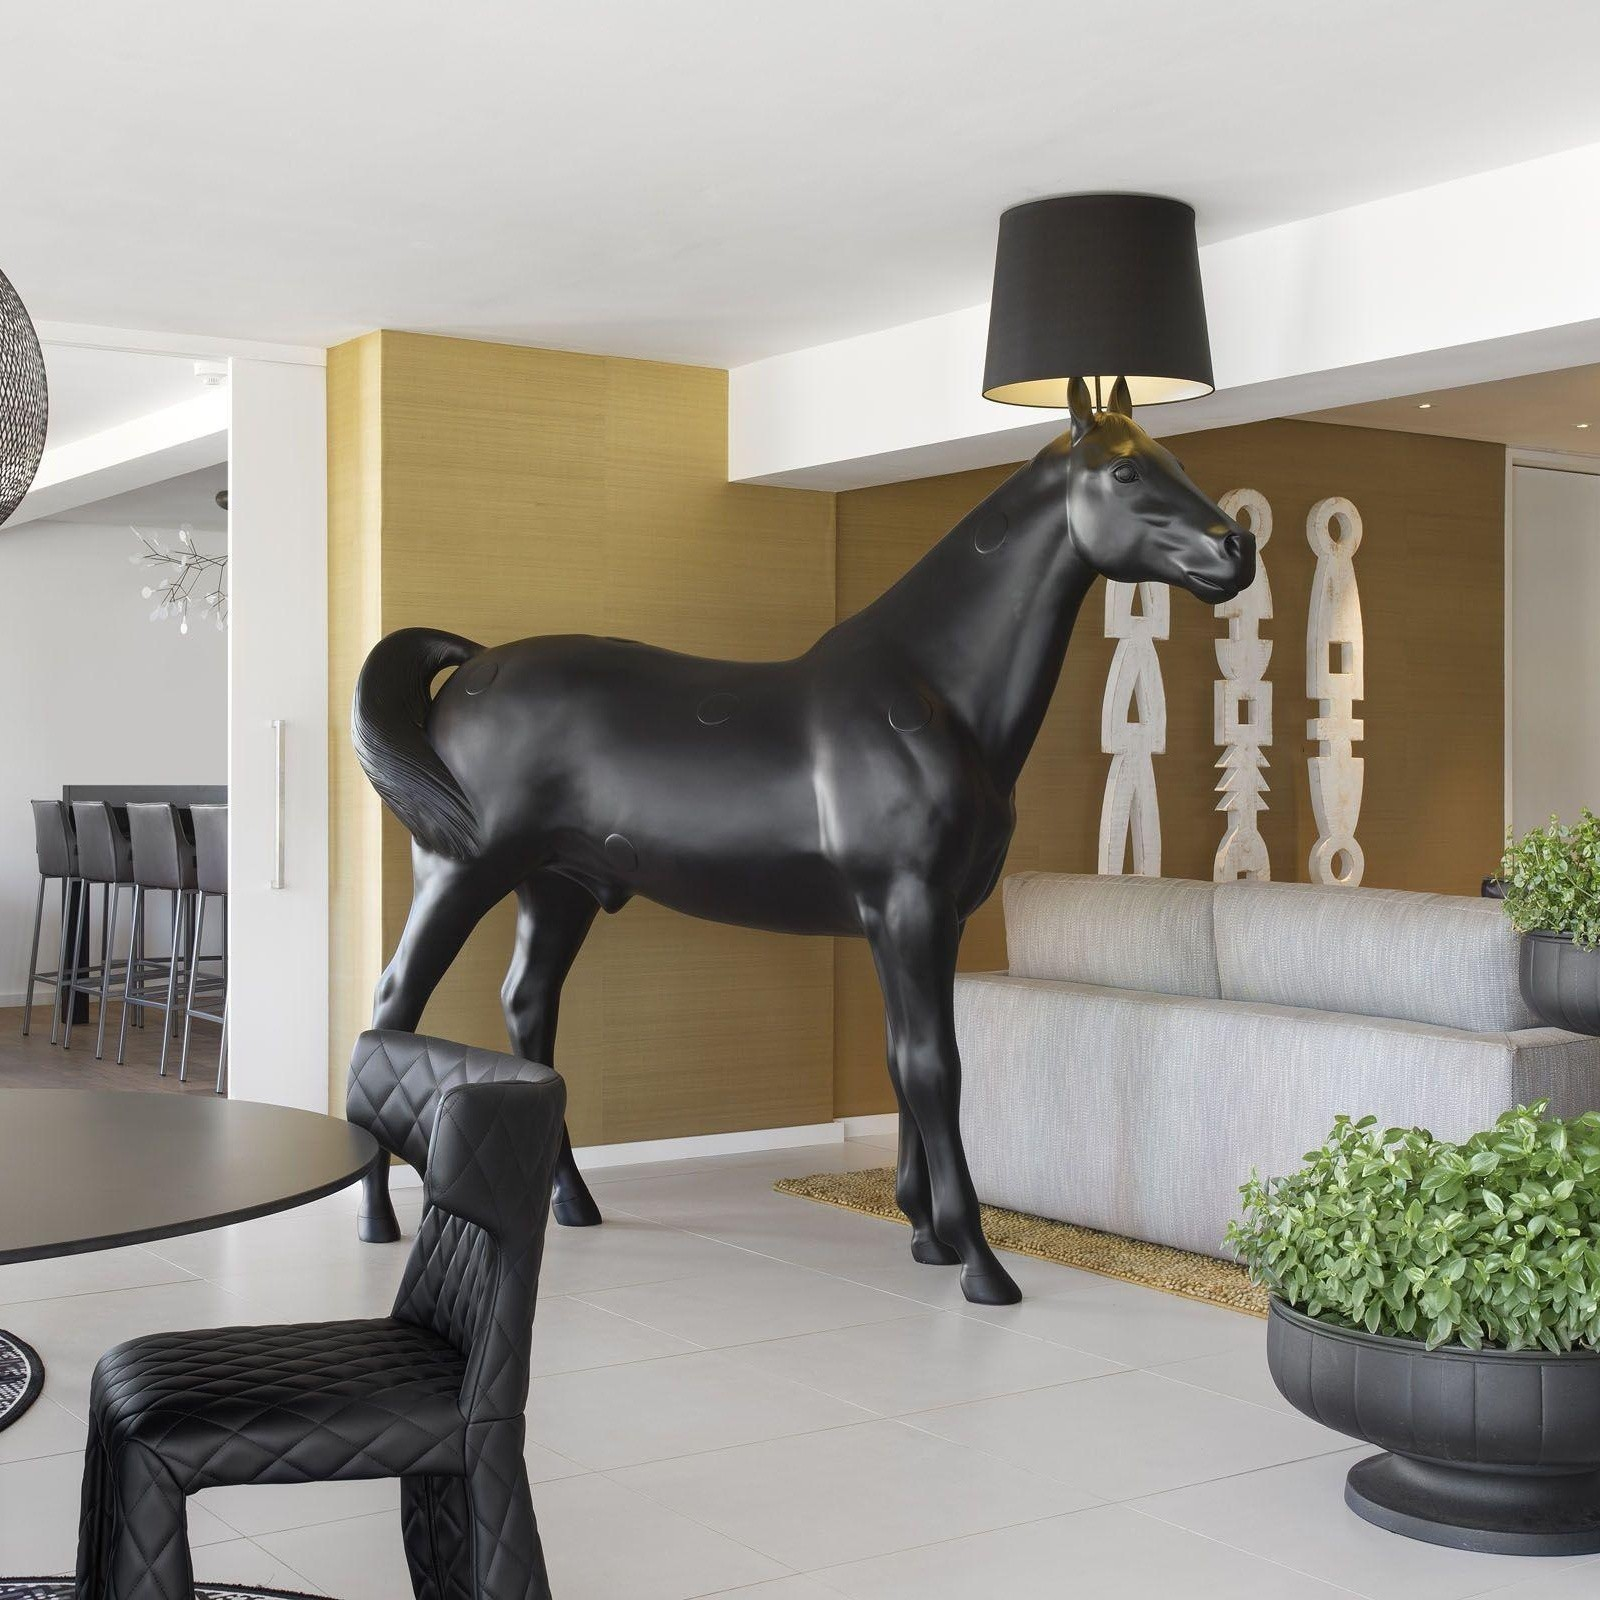 Black horse sculpture lamp